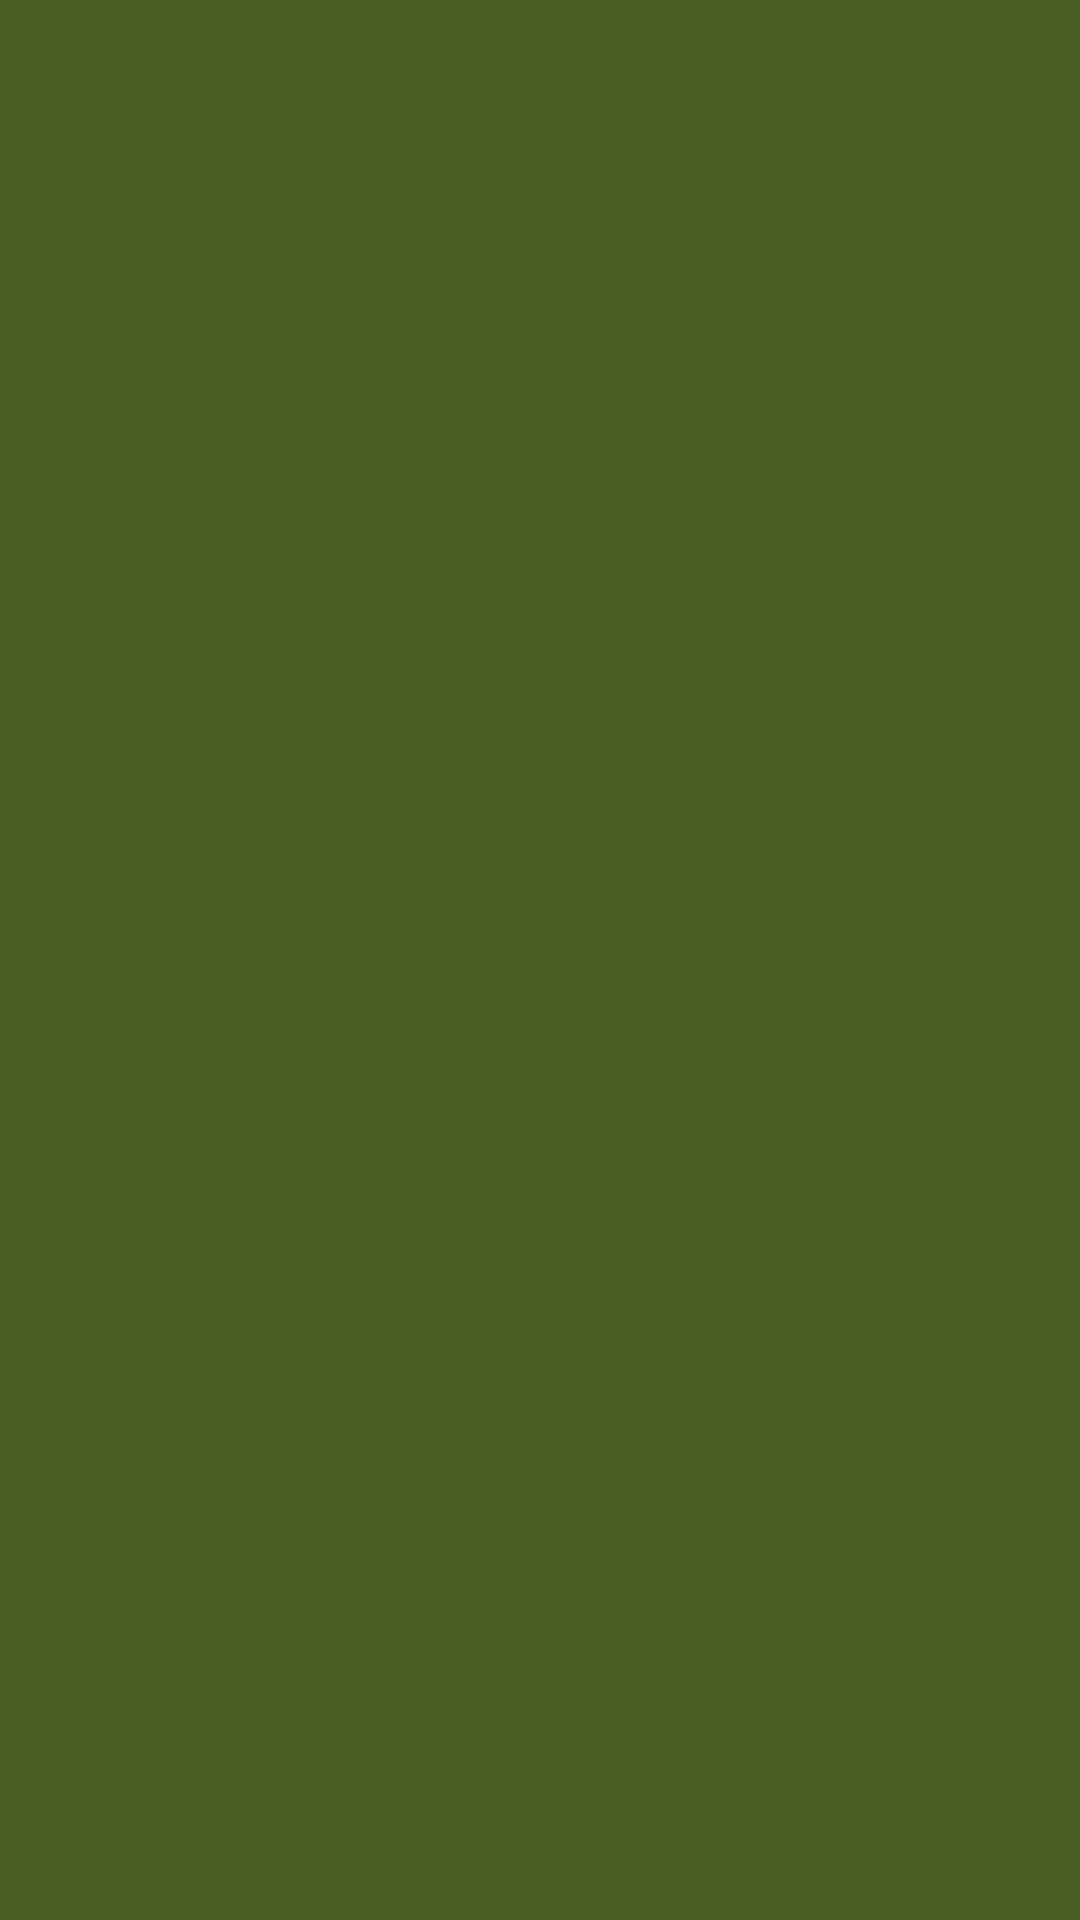 1080x1920 Dark Moss Green Solid Color Background